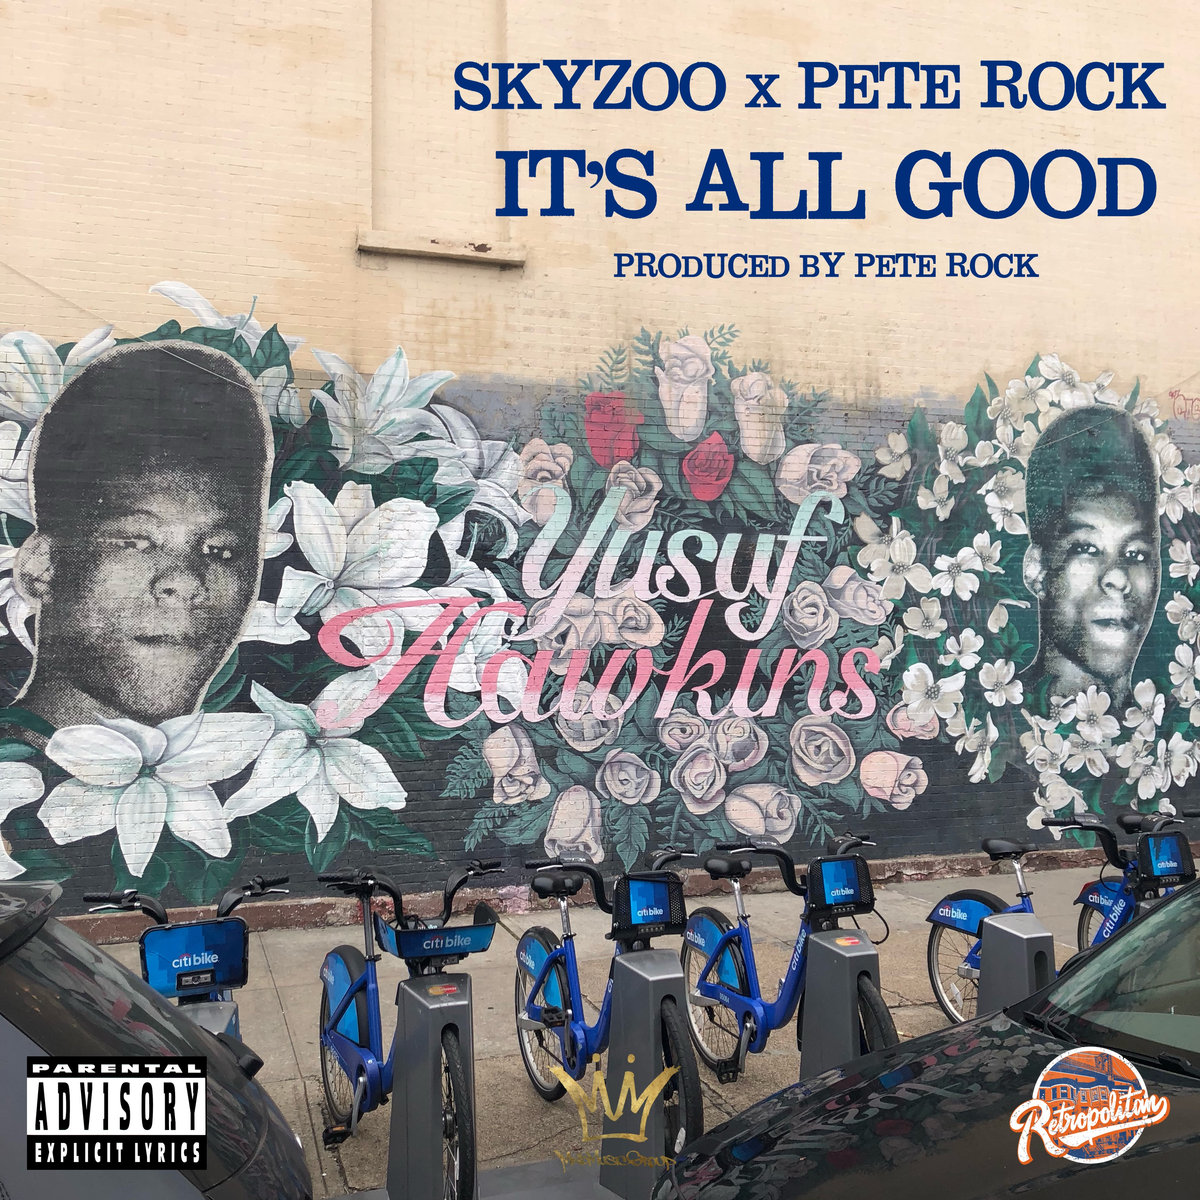 skyzoo pete rock, its all good hiphop